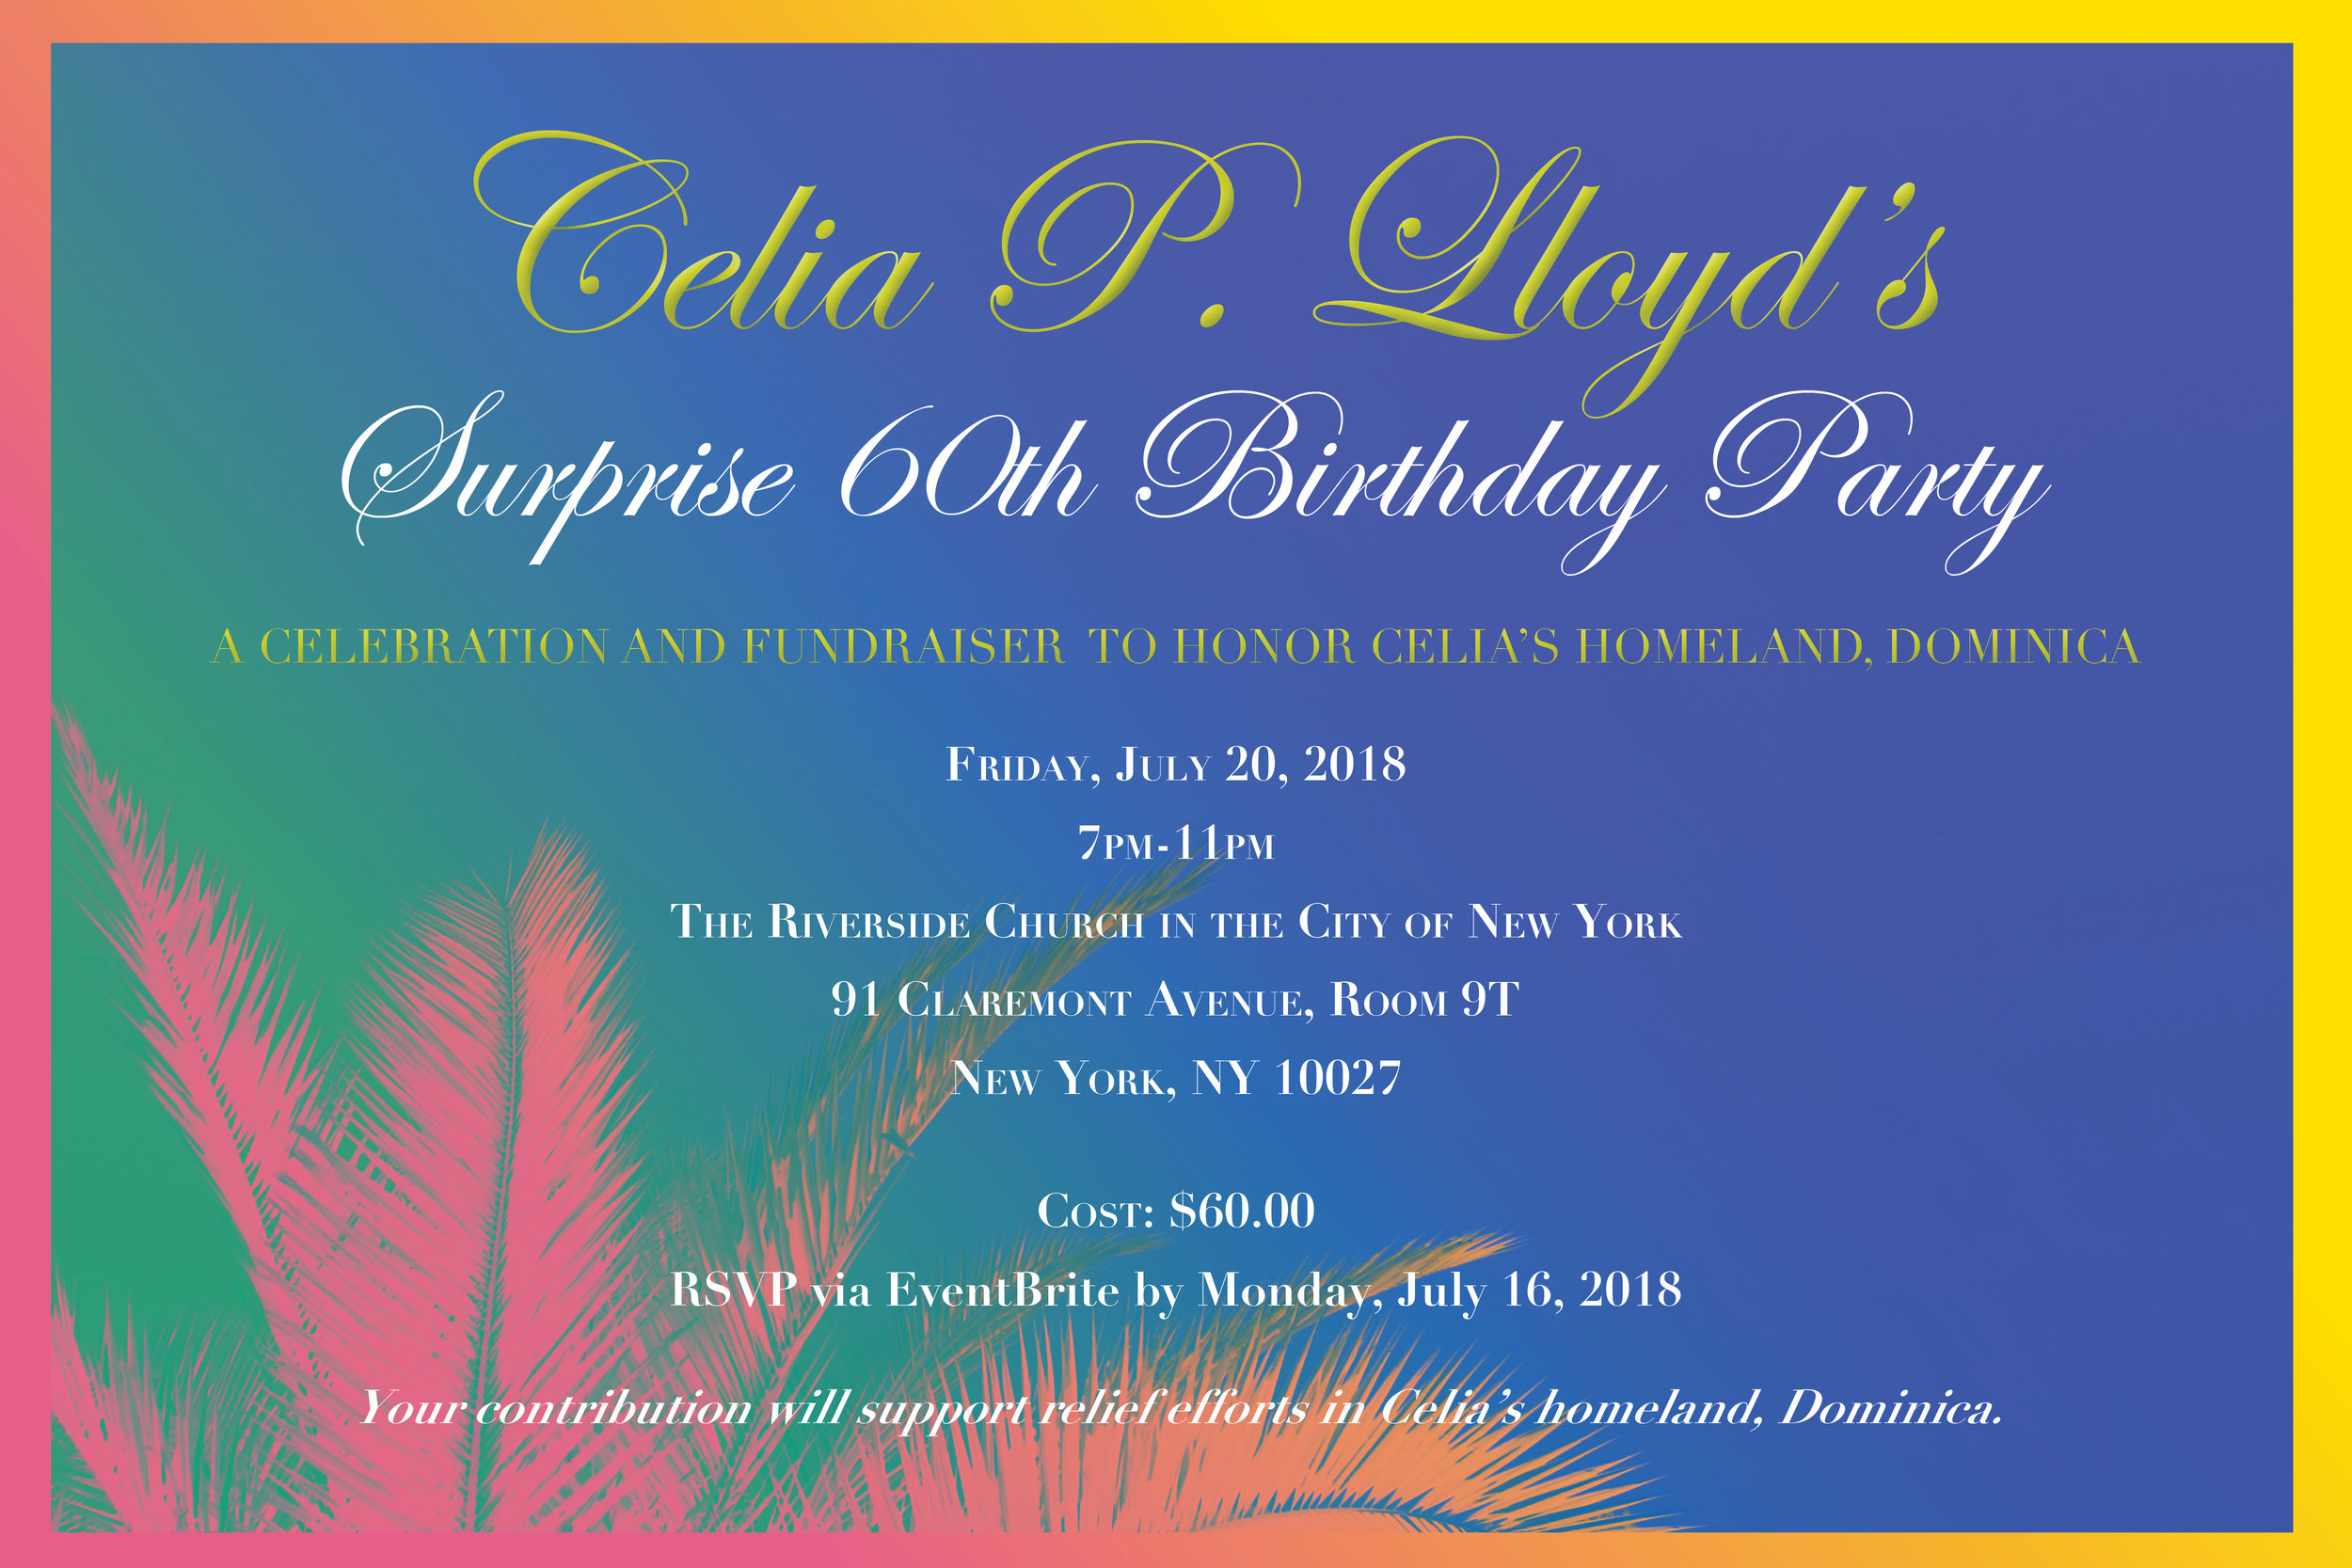 bday invitation for cheryl - 6.24.18 - v2.6.jpg